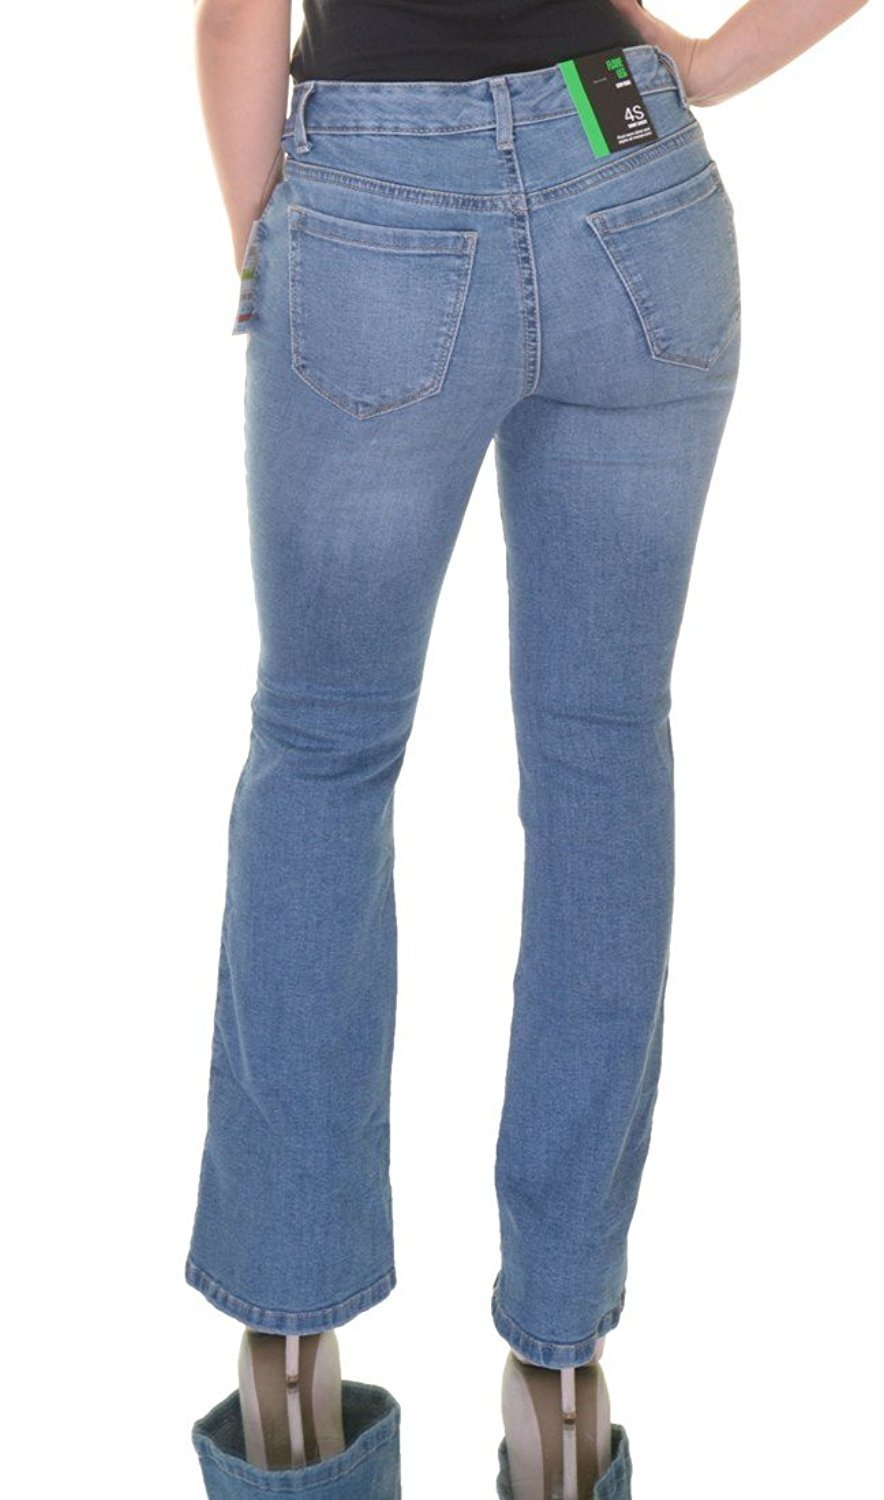 Style & Co. Womens Low Rise Rayon Denim Flare Jeans Blue 10